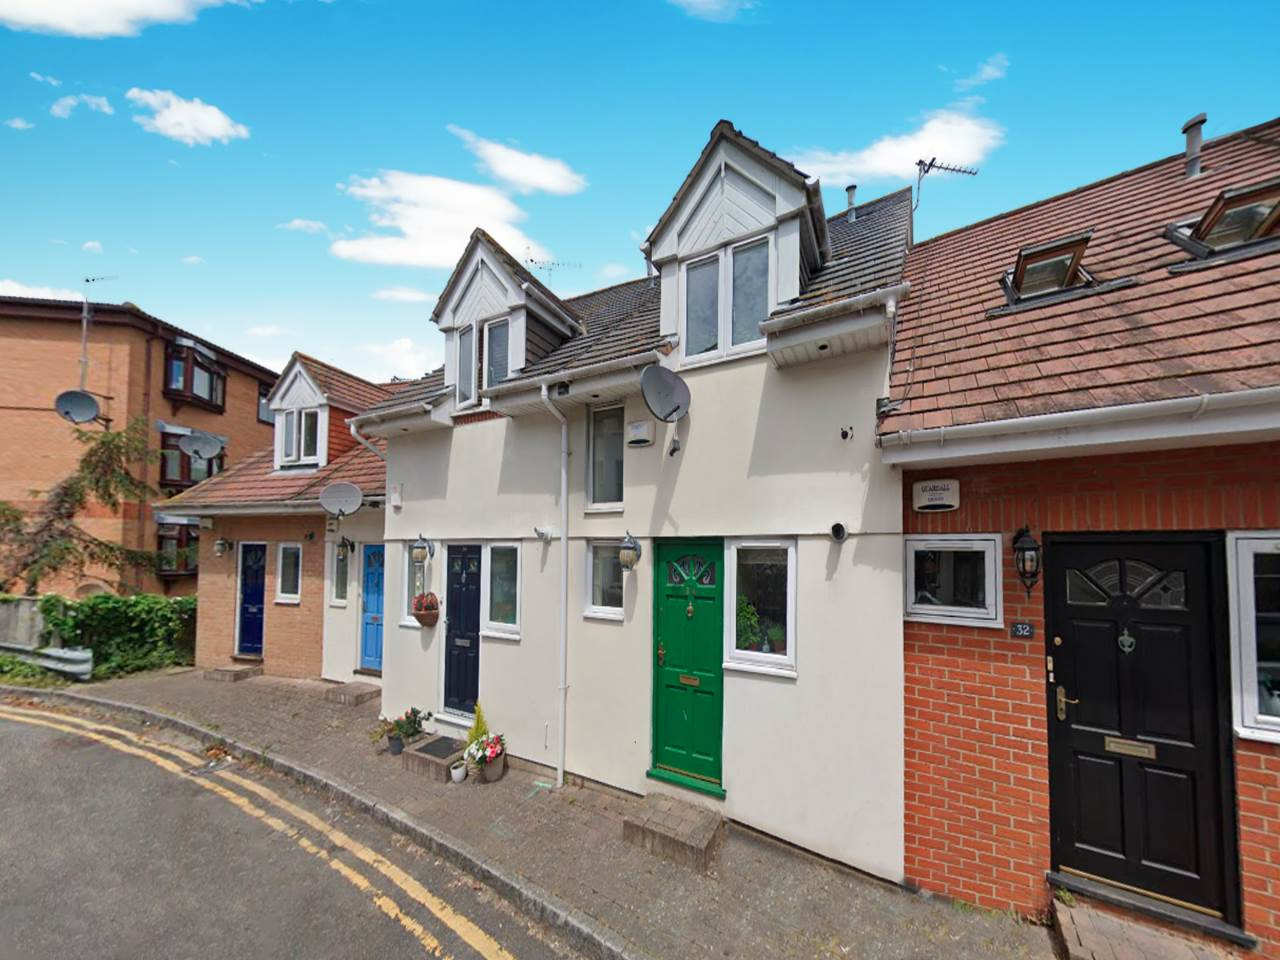 CENTRALLY LOCATED MEWS STYLE TOWN HOUSE * 3 BEDROOMS OVER 4 FLOORS * GARAGE * GATED ENTRANCE * EN SUITE PLUS 2 BATHROOMS * UTILITY ROOM * MODERN KITCHEN * NO CHAIN!!